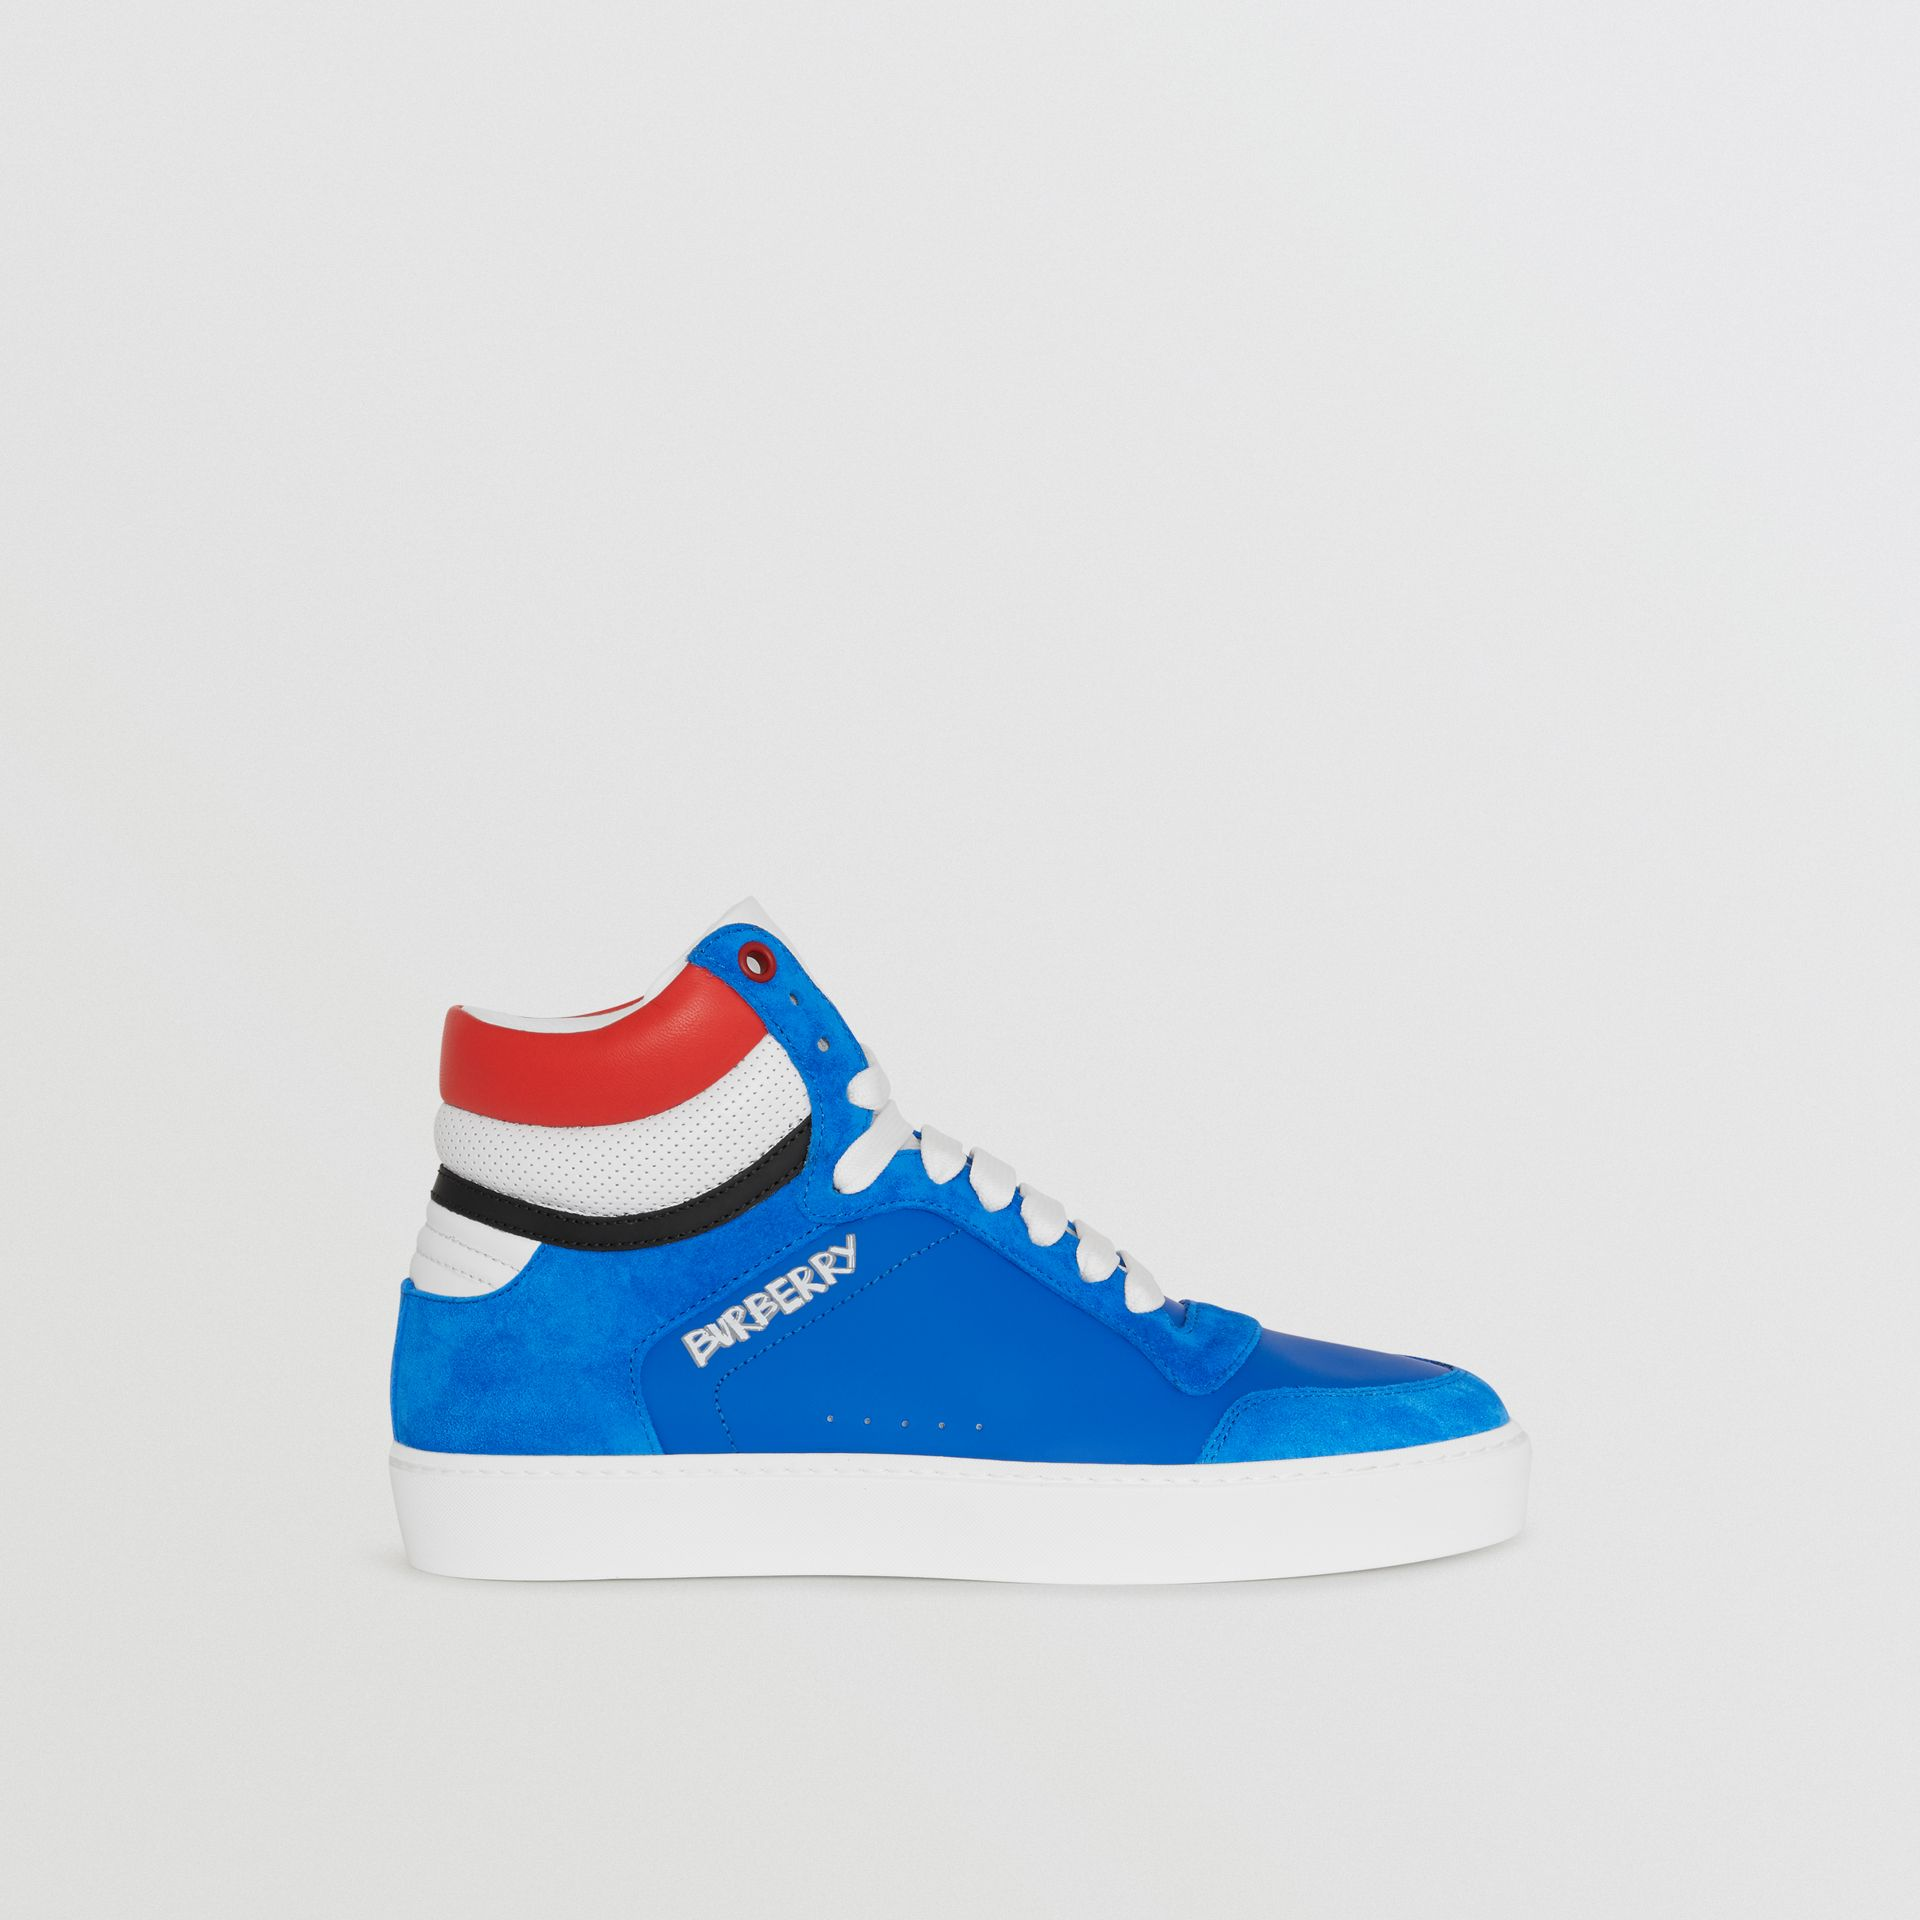 Leather and Suede High-top Sneakers in Bright Sky Blue - Women | Burberry - gallery image 4